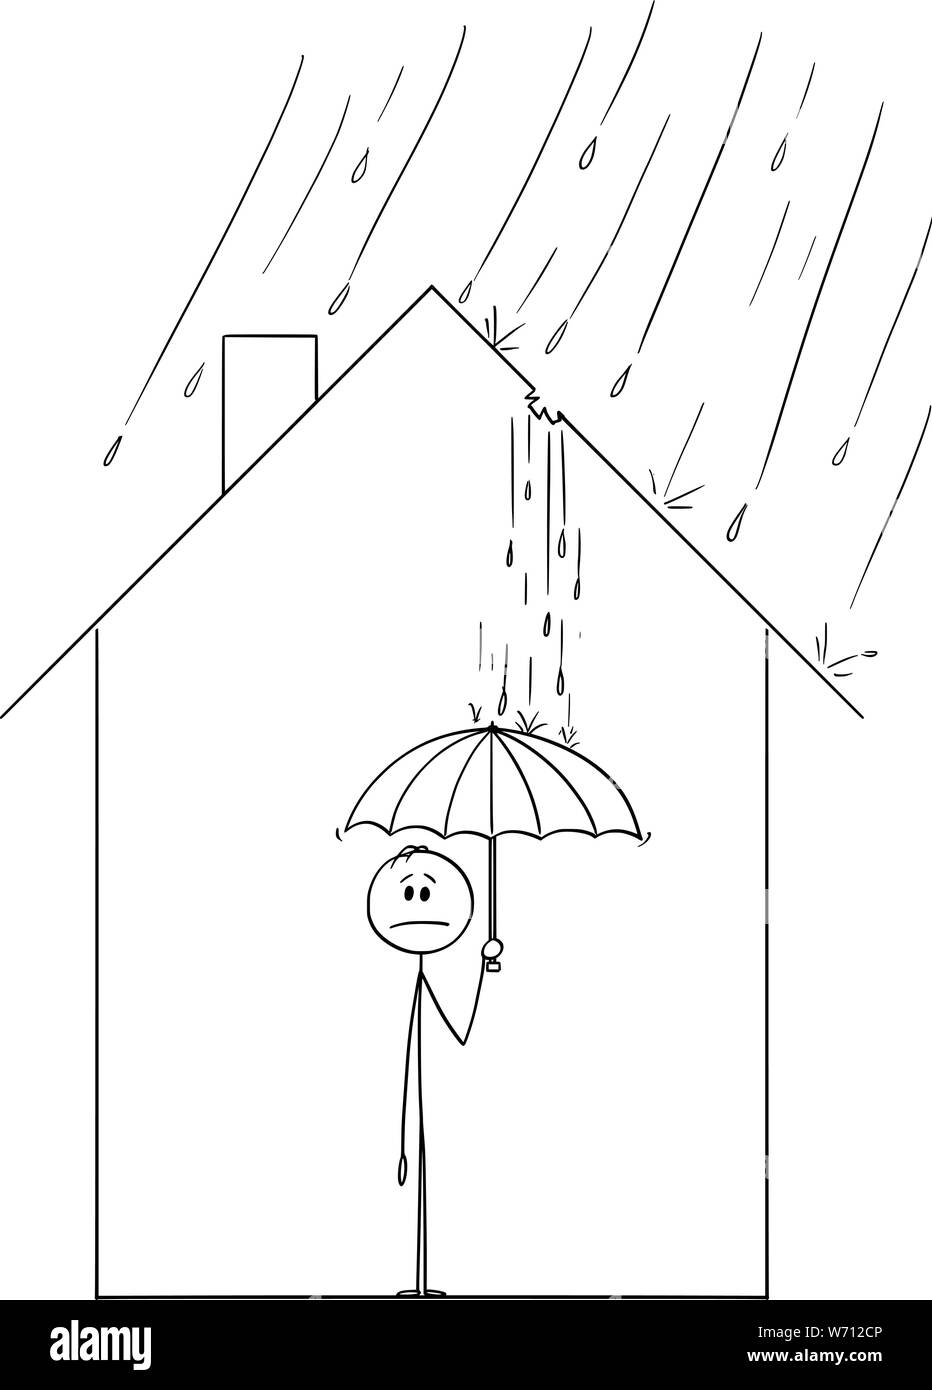 Vector Cartoon Stick Figure Drawing Conceptual Illustration Of Frustrated Man Holding Umbrella Inside His Family House Because Rain Is Coming Through The Hole In Roof Stock Vector Image Art Alamy